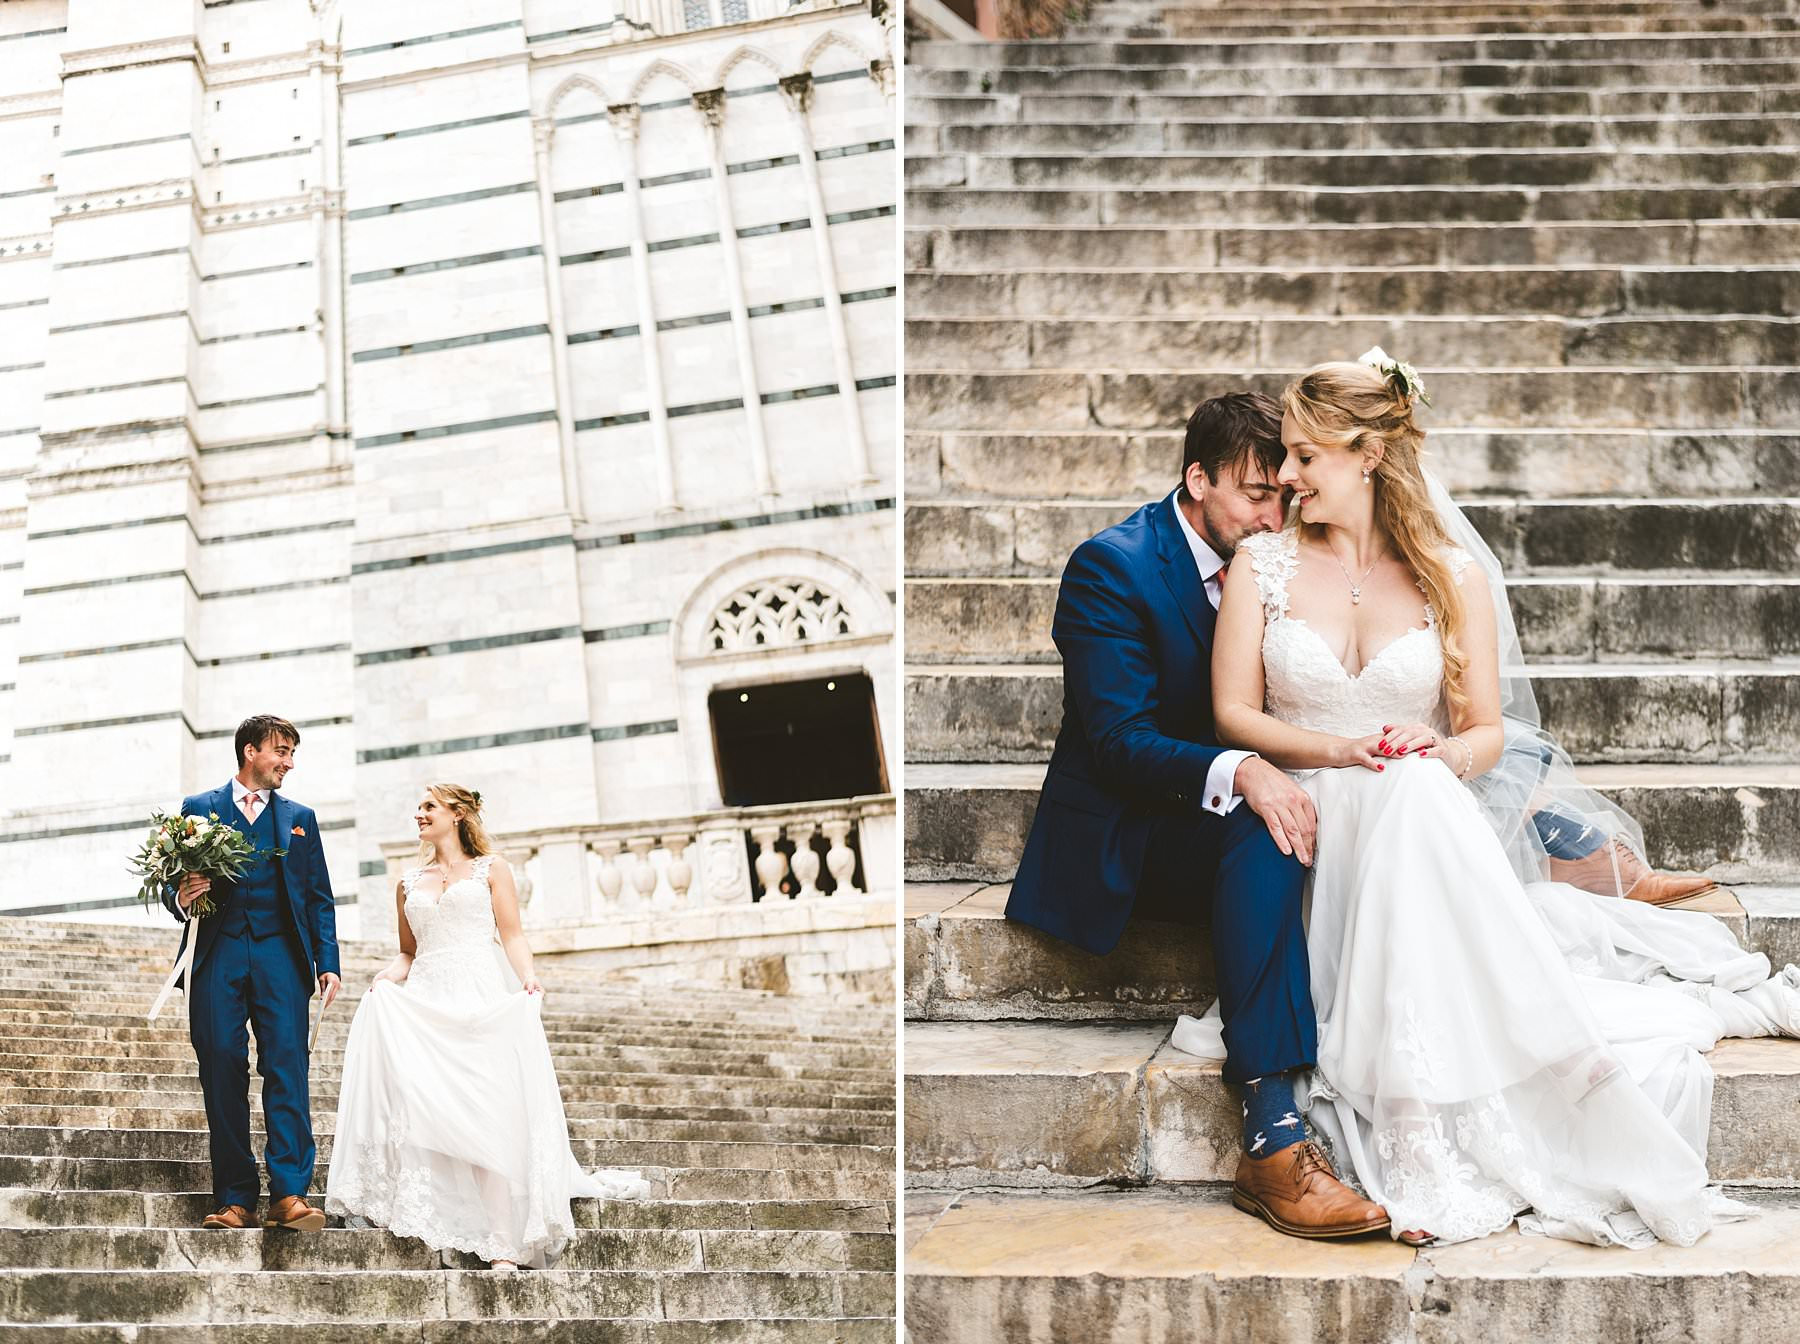 Lovely and elegant couple get married in Tuscany at Siena one of the most charming city in Tuscany. Bride and groom walk tour photo shoot in the streets of the city near the Duomo